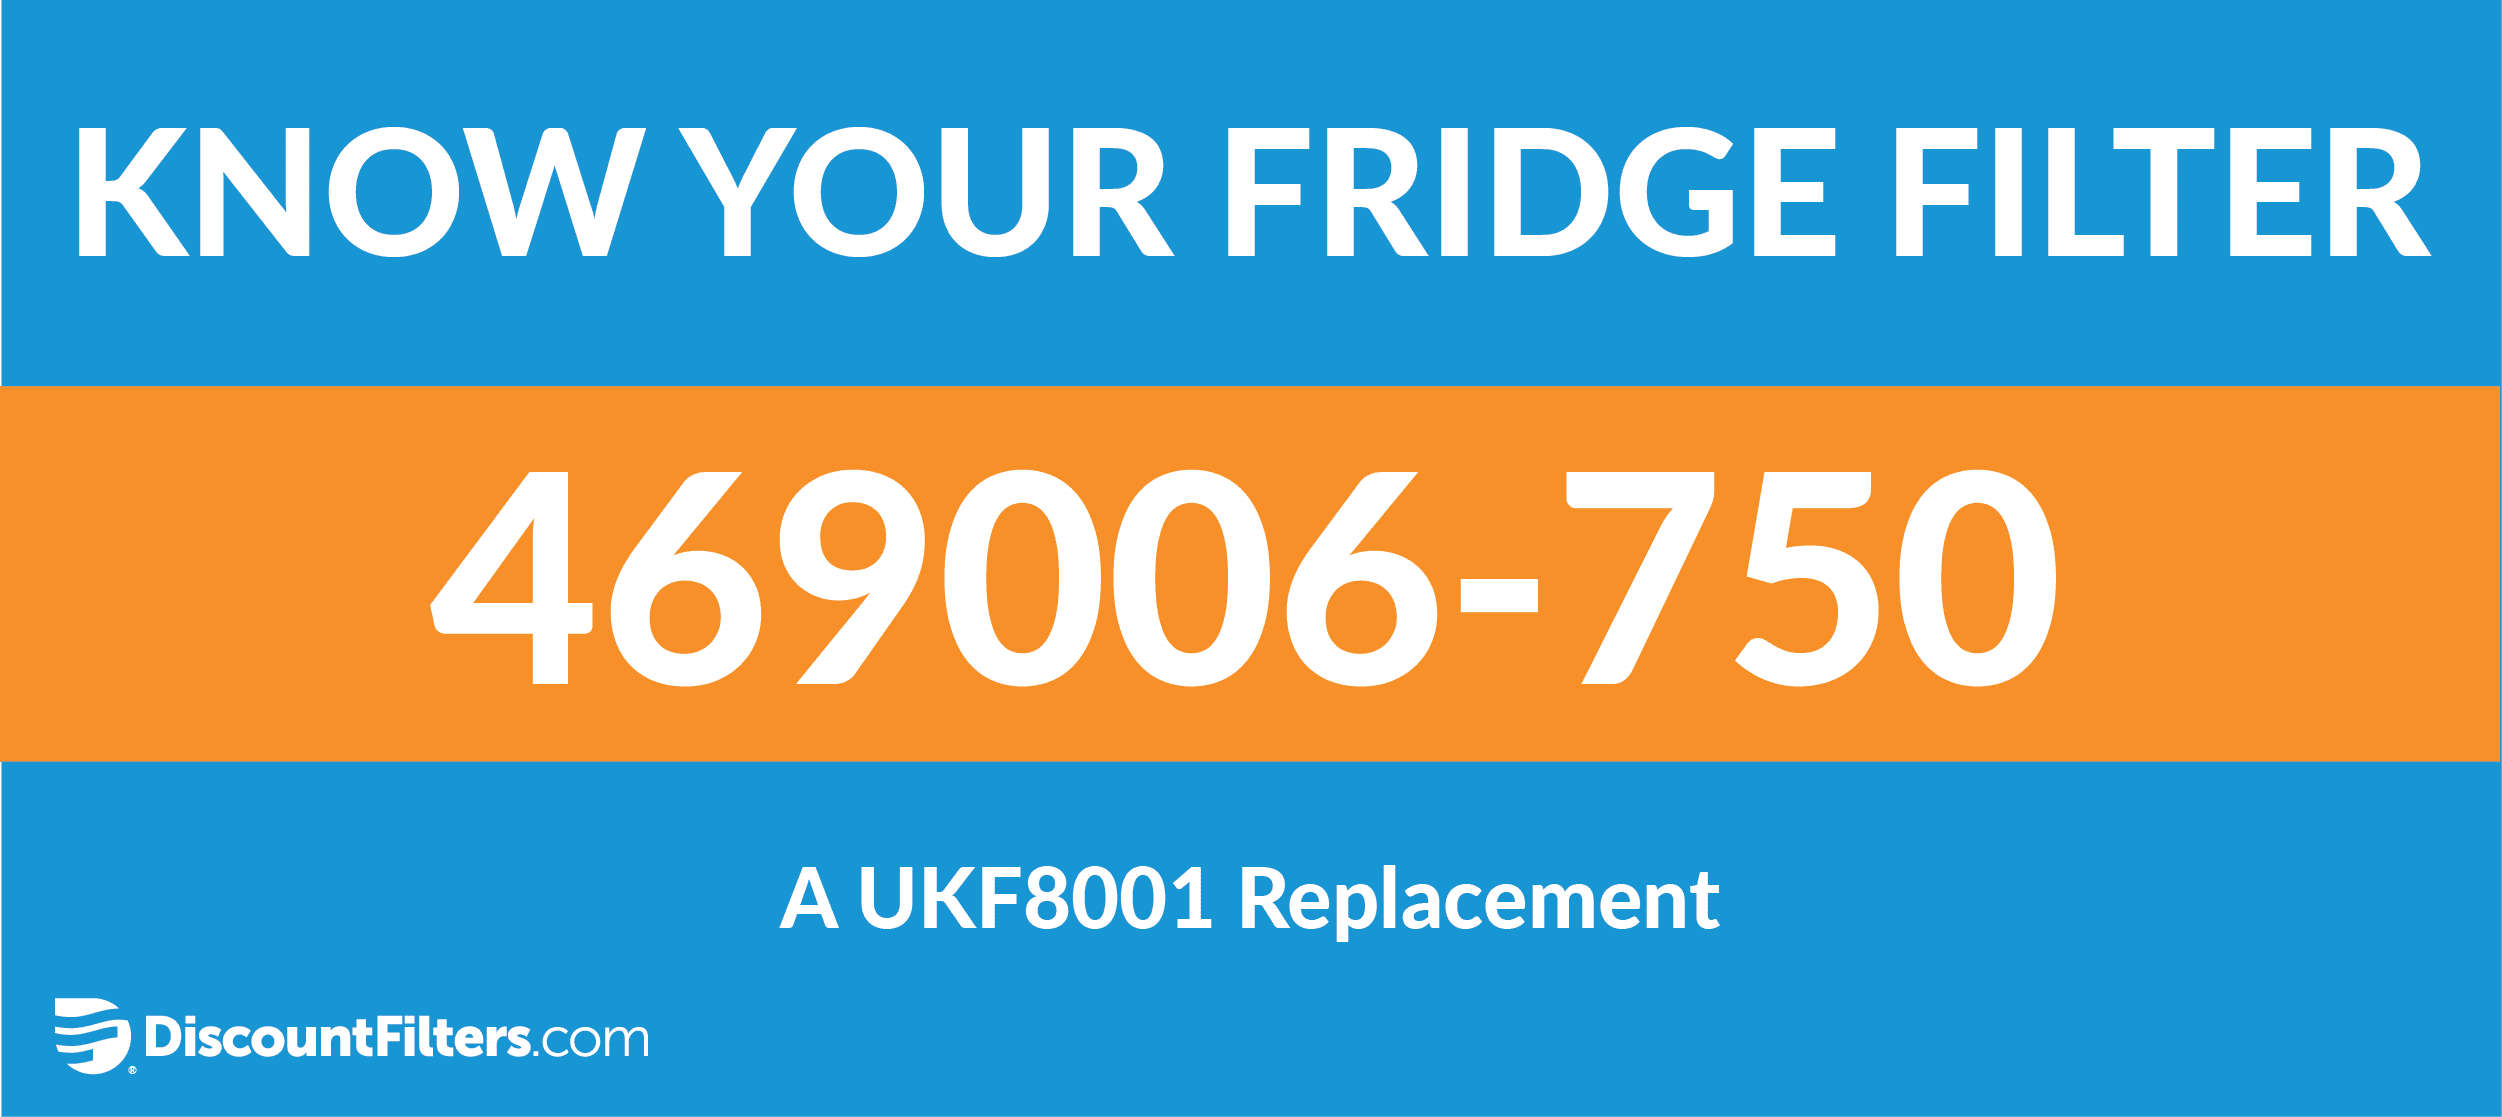 know your fridge filter 469006-750 a ukf8001 replacement